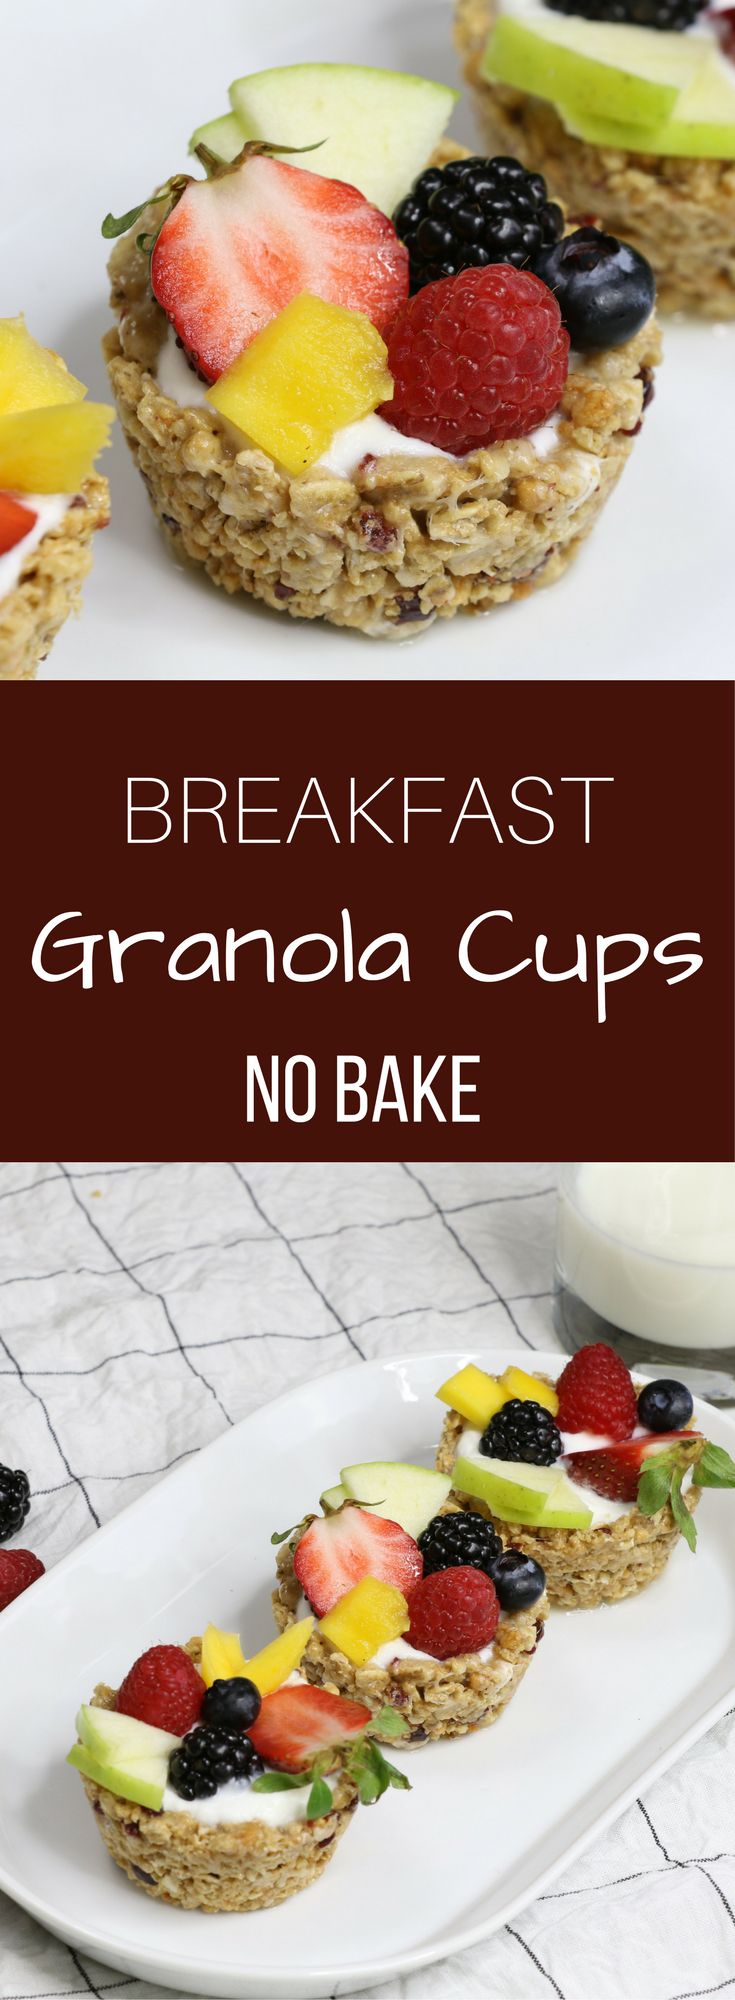 Breakfast Granola Cups recipe is a quick and easy, no bake vegetarian recipe. The cups themselves use only 3 ingredients.